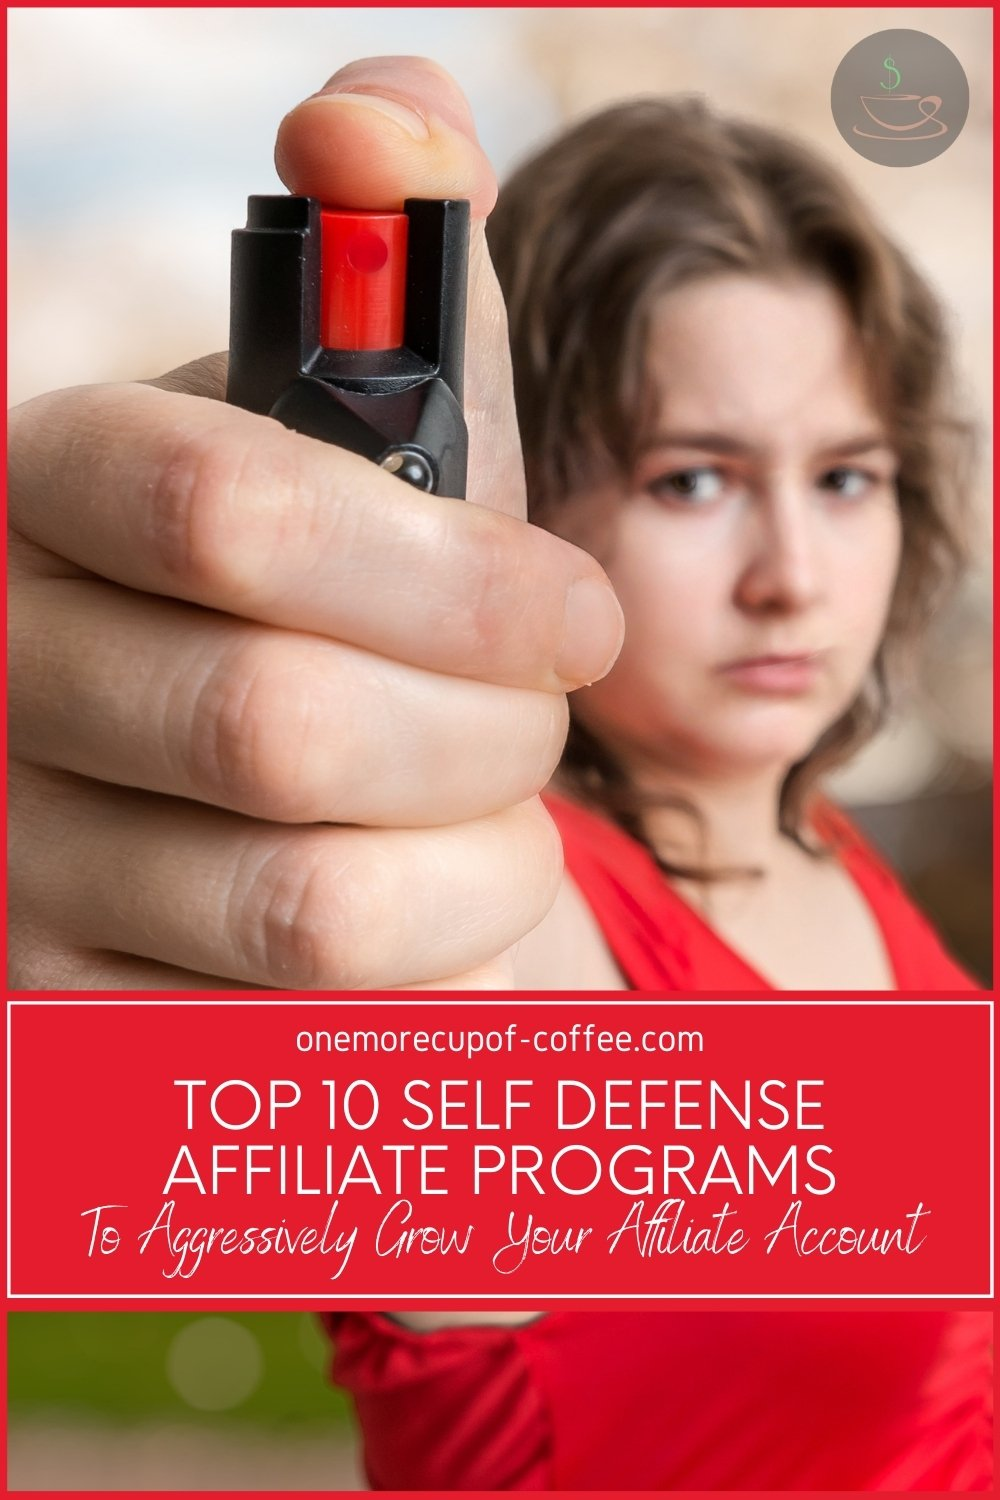 """woman in red top holding a pepper spray to the camera, with text overlay """"Top 10 Self Defense Affiliate Programs To Aggressively Grow Your Affiliate Account"""""""